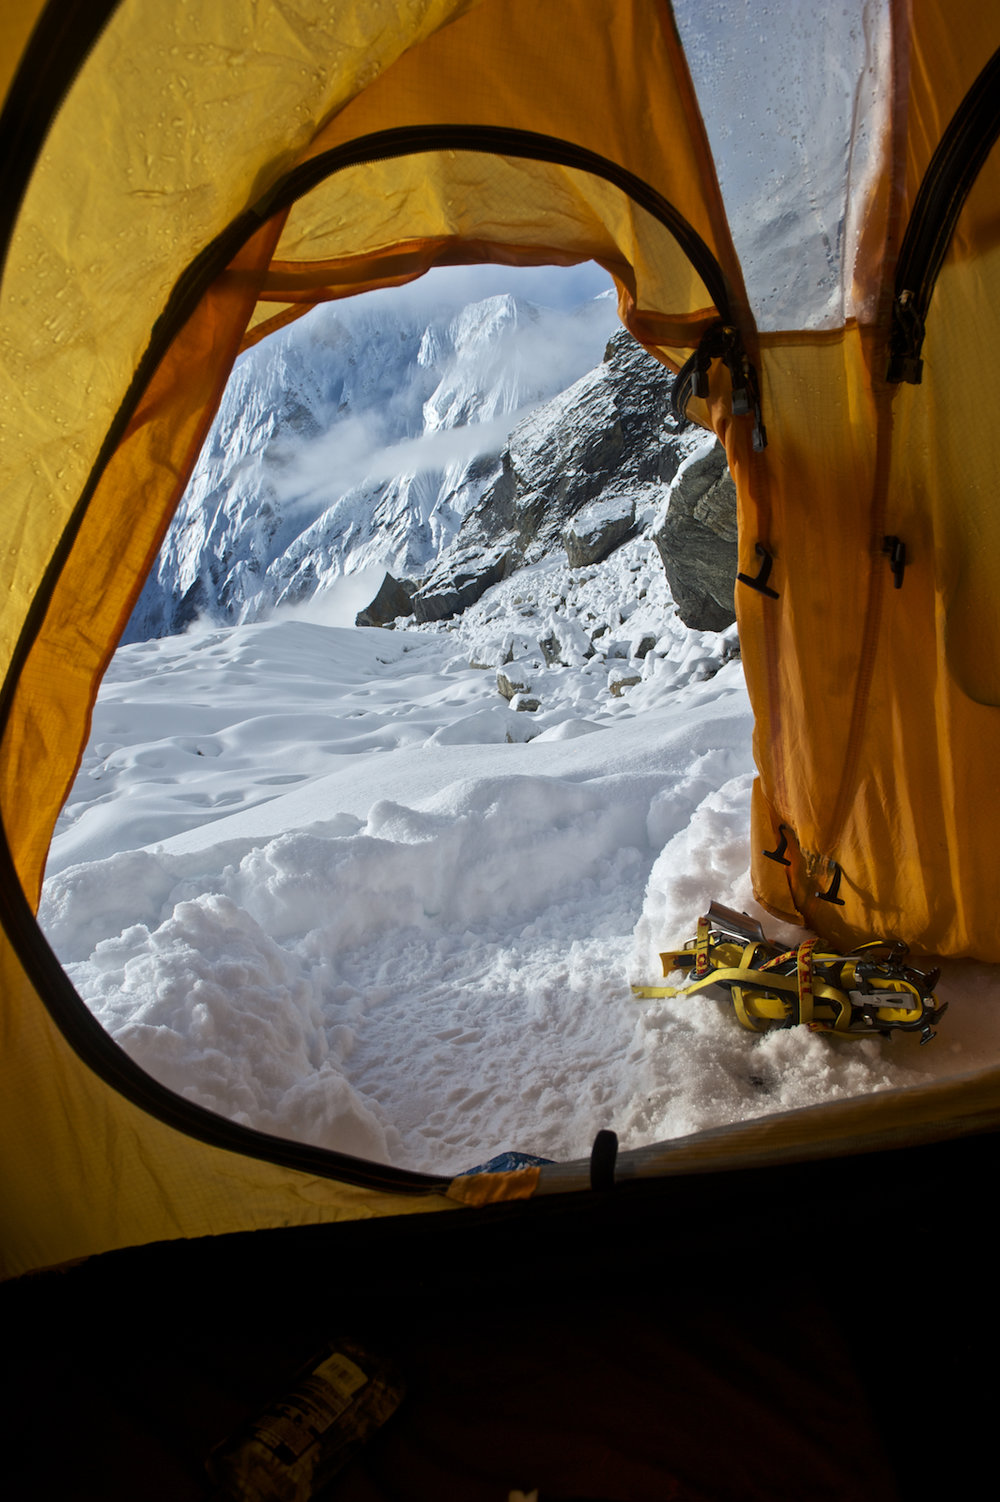 the view of the Nepal Himalayas from a North Face tent.  Image by New Orleans based travel photographer, Marc Pagani - marcpagani.com